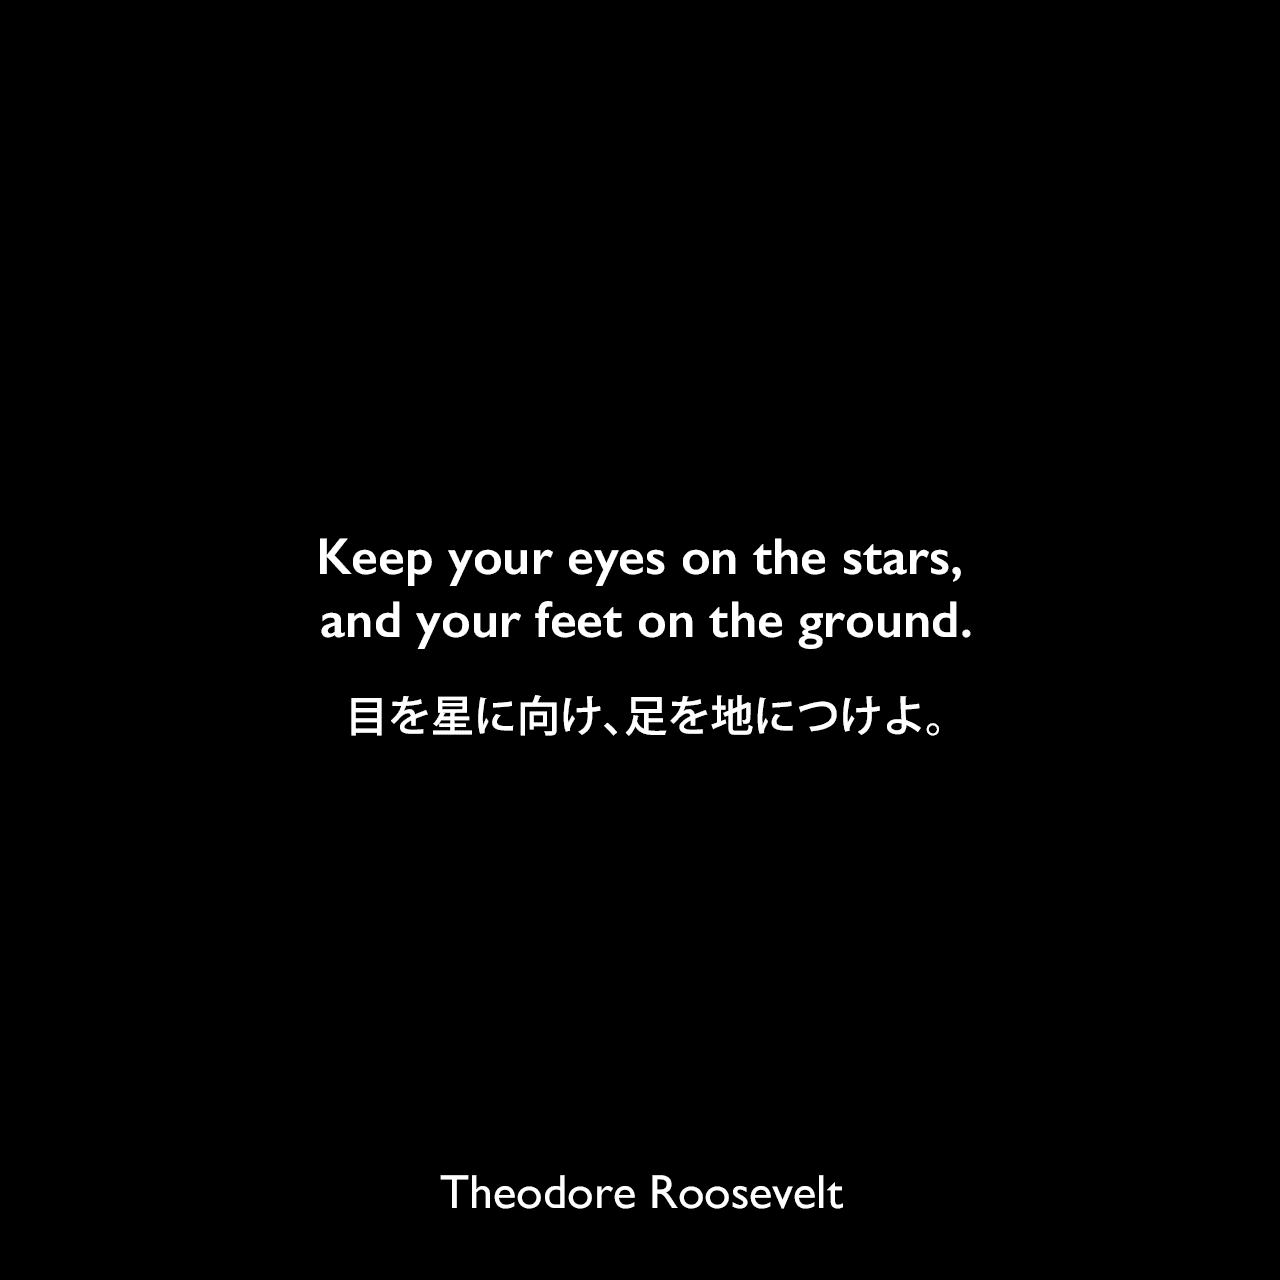 Keep your eyes on the stars, and your feet on the ground.目を星に向け、足を地につけよ。Theodore Roosevelt